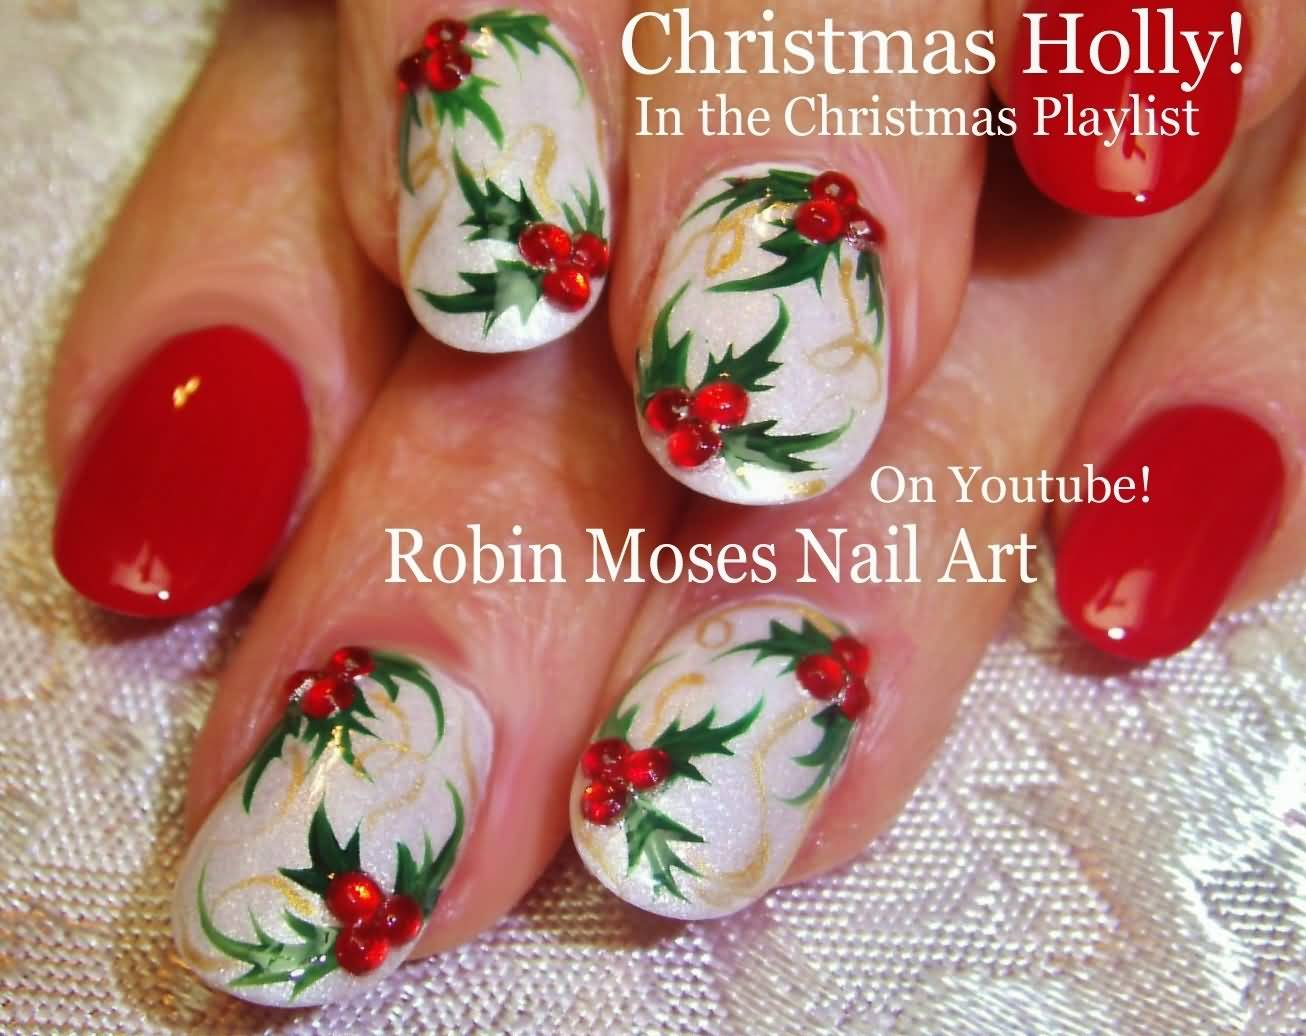 Green Leafs With Cherry Christmas Holly Nail Art Tutorial Video